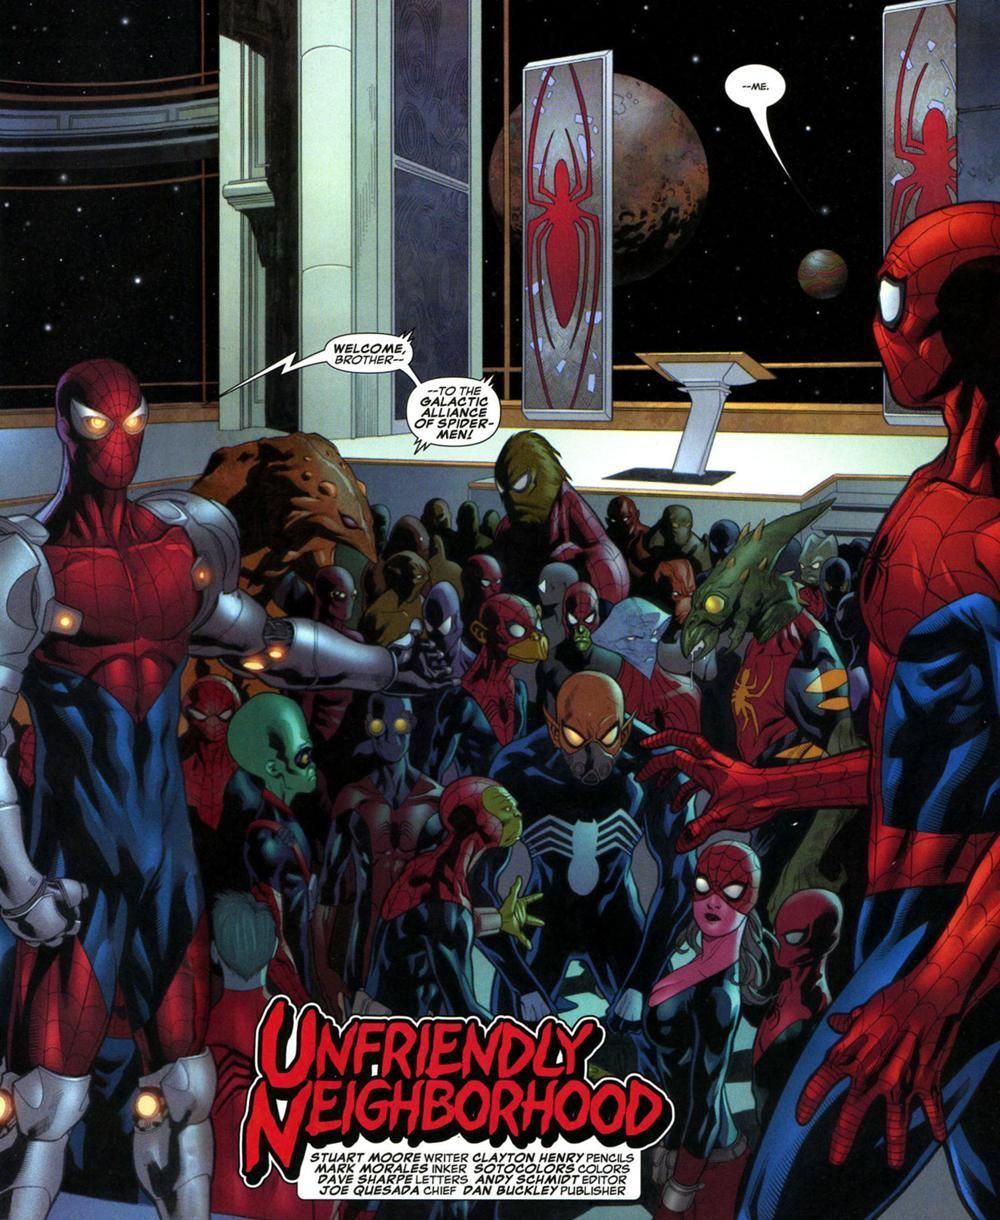 Galactic Alliance of Spider-Men (Earth-616) -  Galactic Alliance of Spider-Men (Earth-616) – Marvel Comics Database  - #alliance #earth #Earth616 #galactic #marvelcomicsart #marvelcomicsartwork #marvelcomicscharacters #marvelcomicscovers #marvelcomicsfunny #marvelcomicsstrip #marvelcomicsvintage #spider #SpiderMen